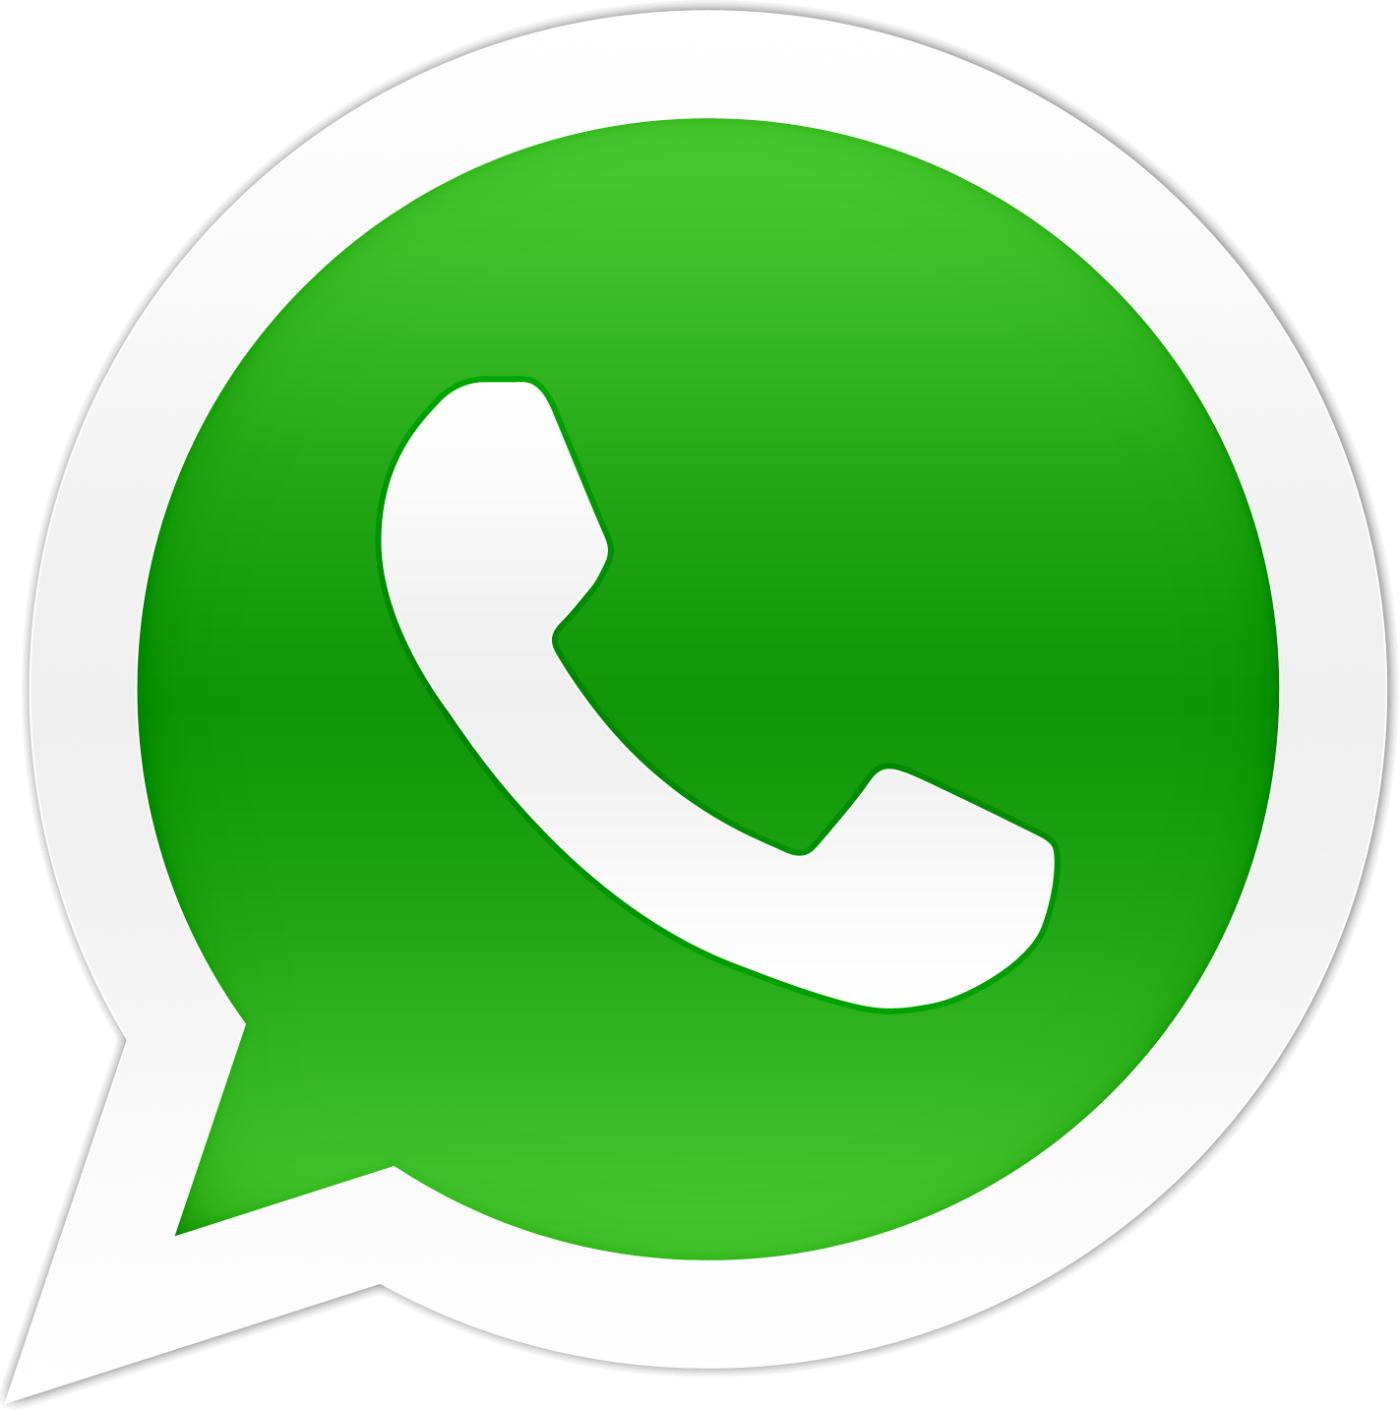 WhatsApp Web's icon